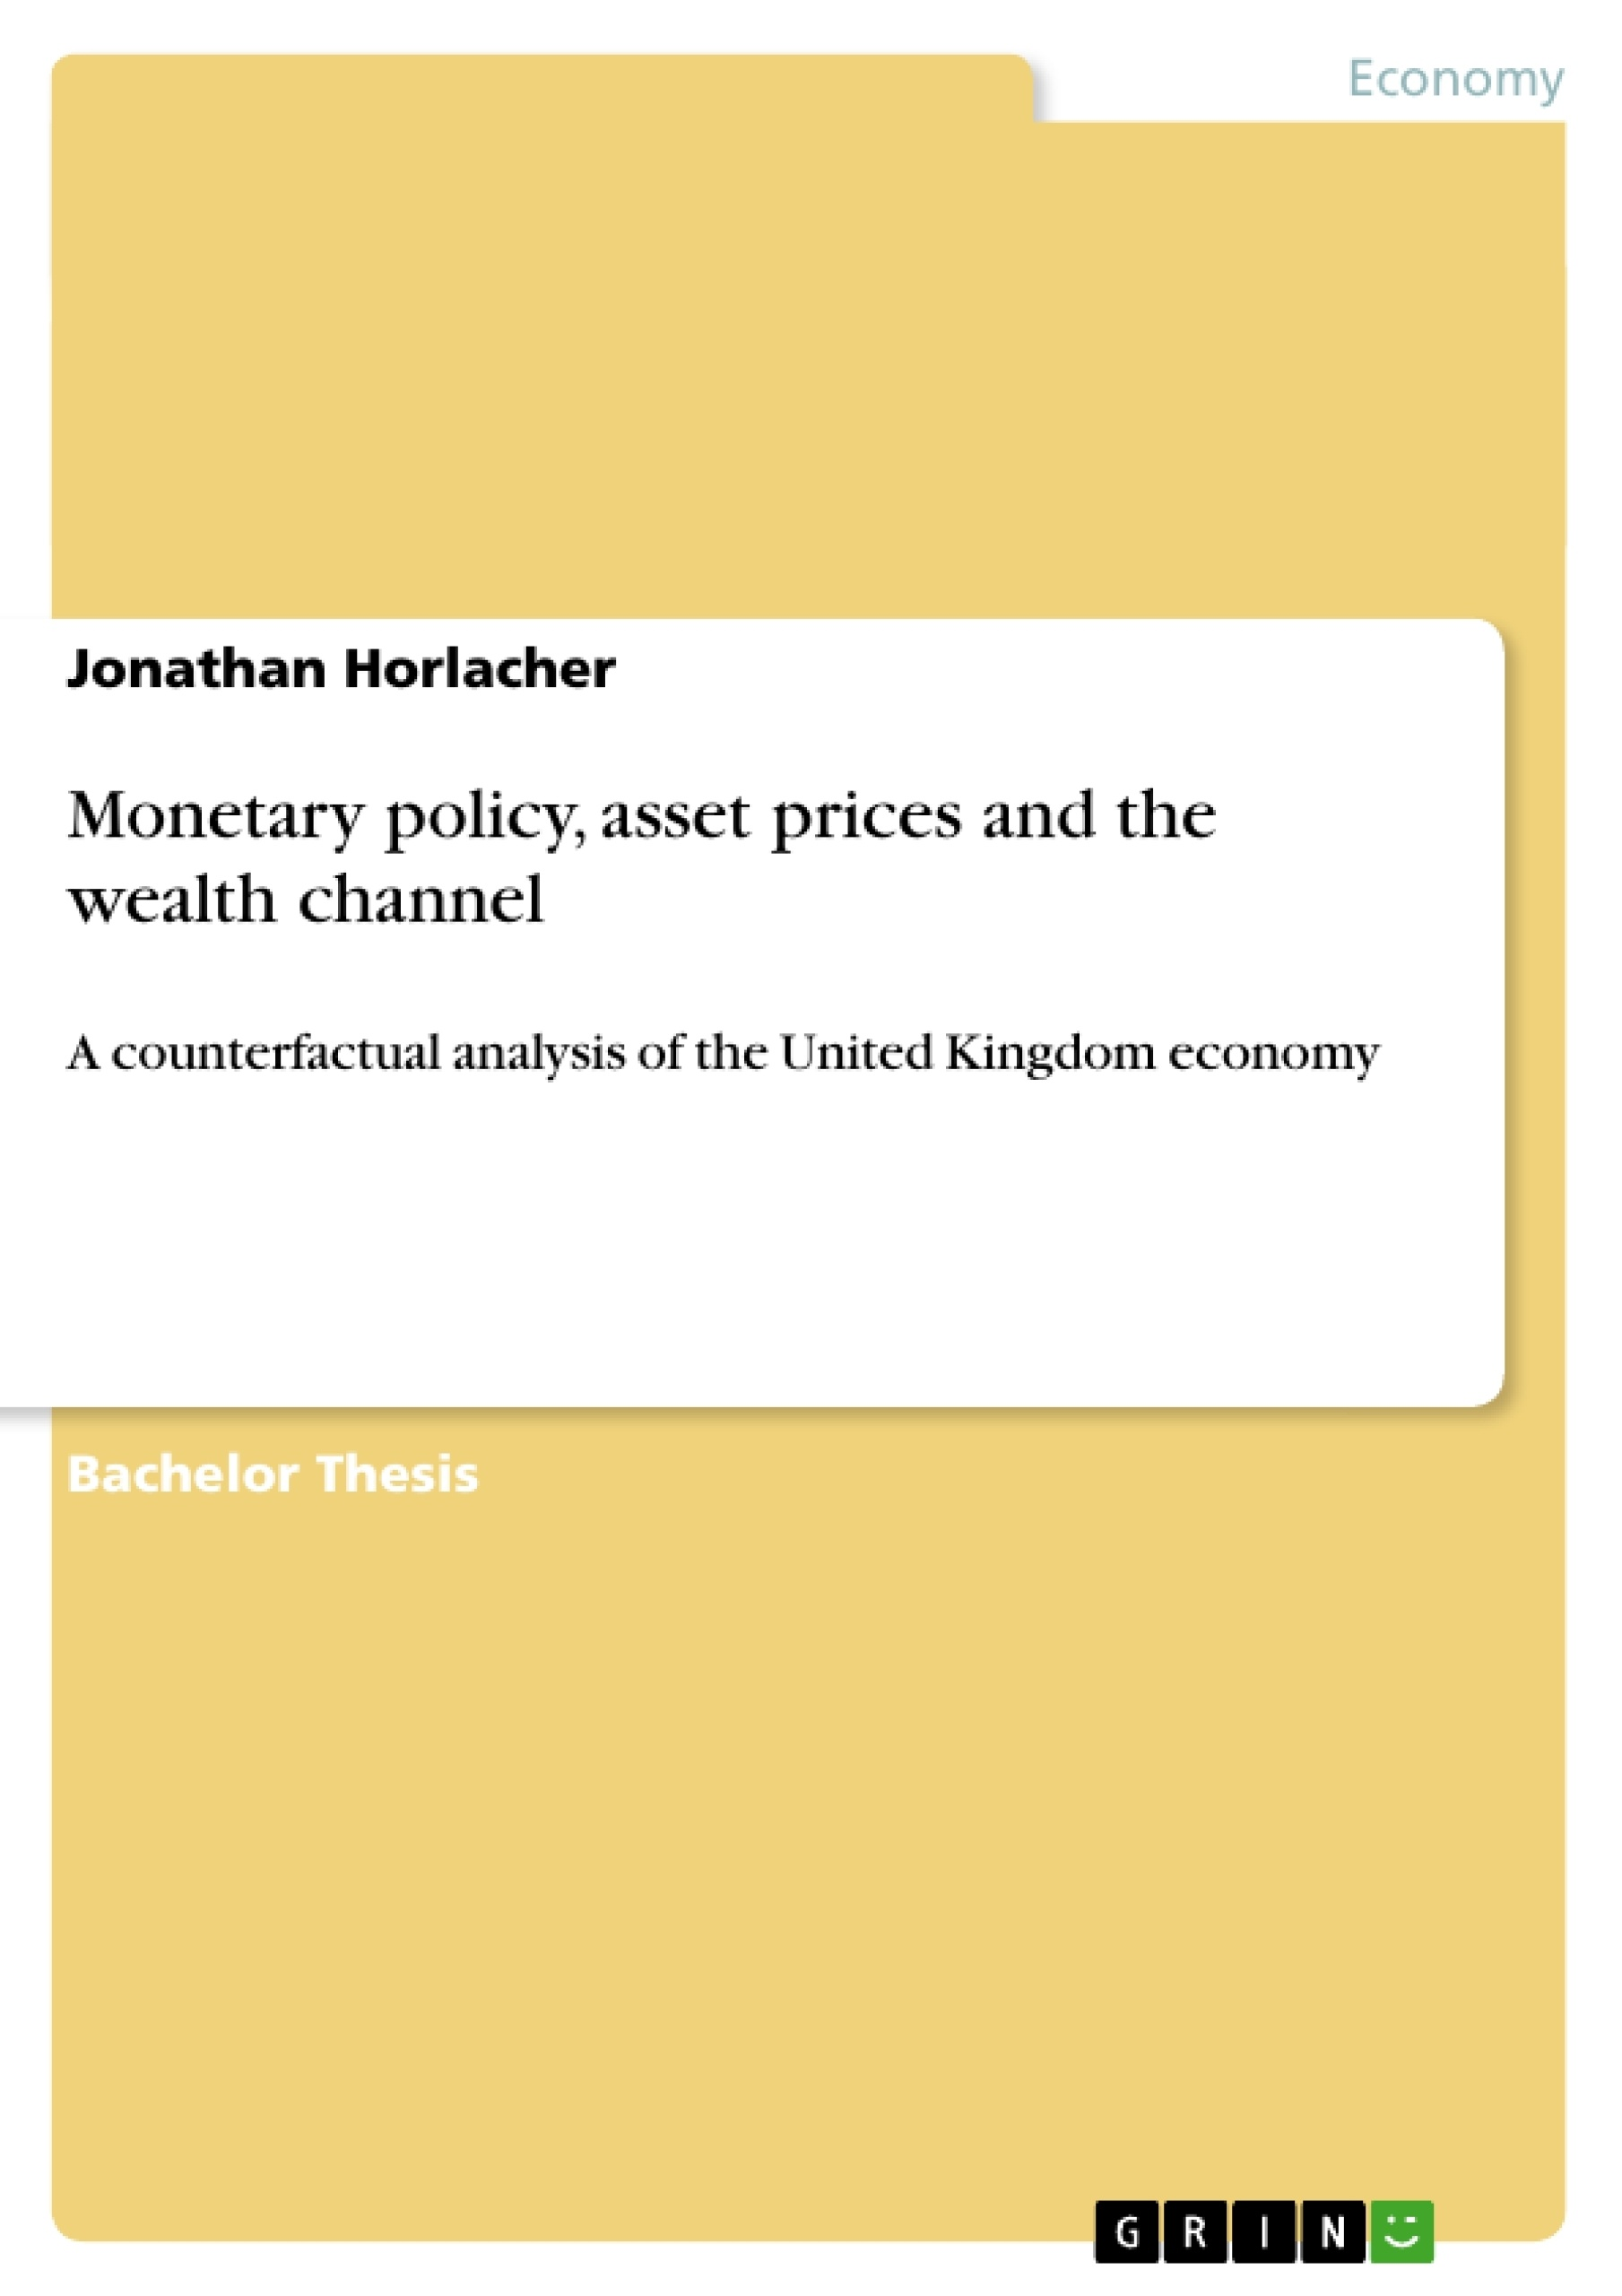 Title: Monetary policy, asset prices and the wealth channel